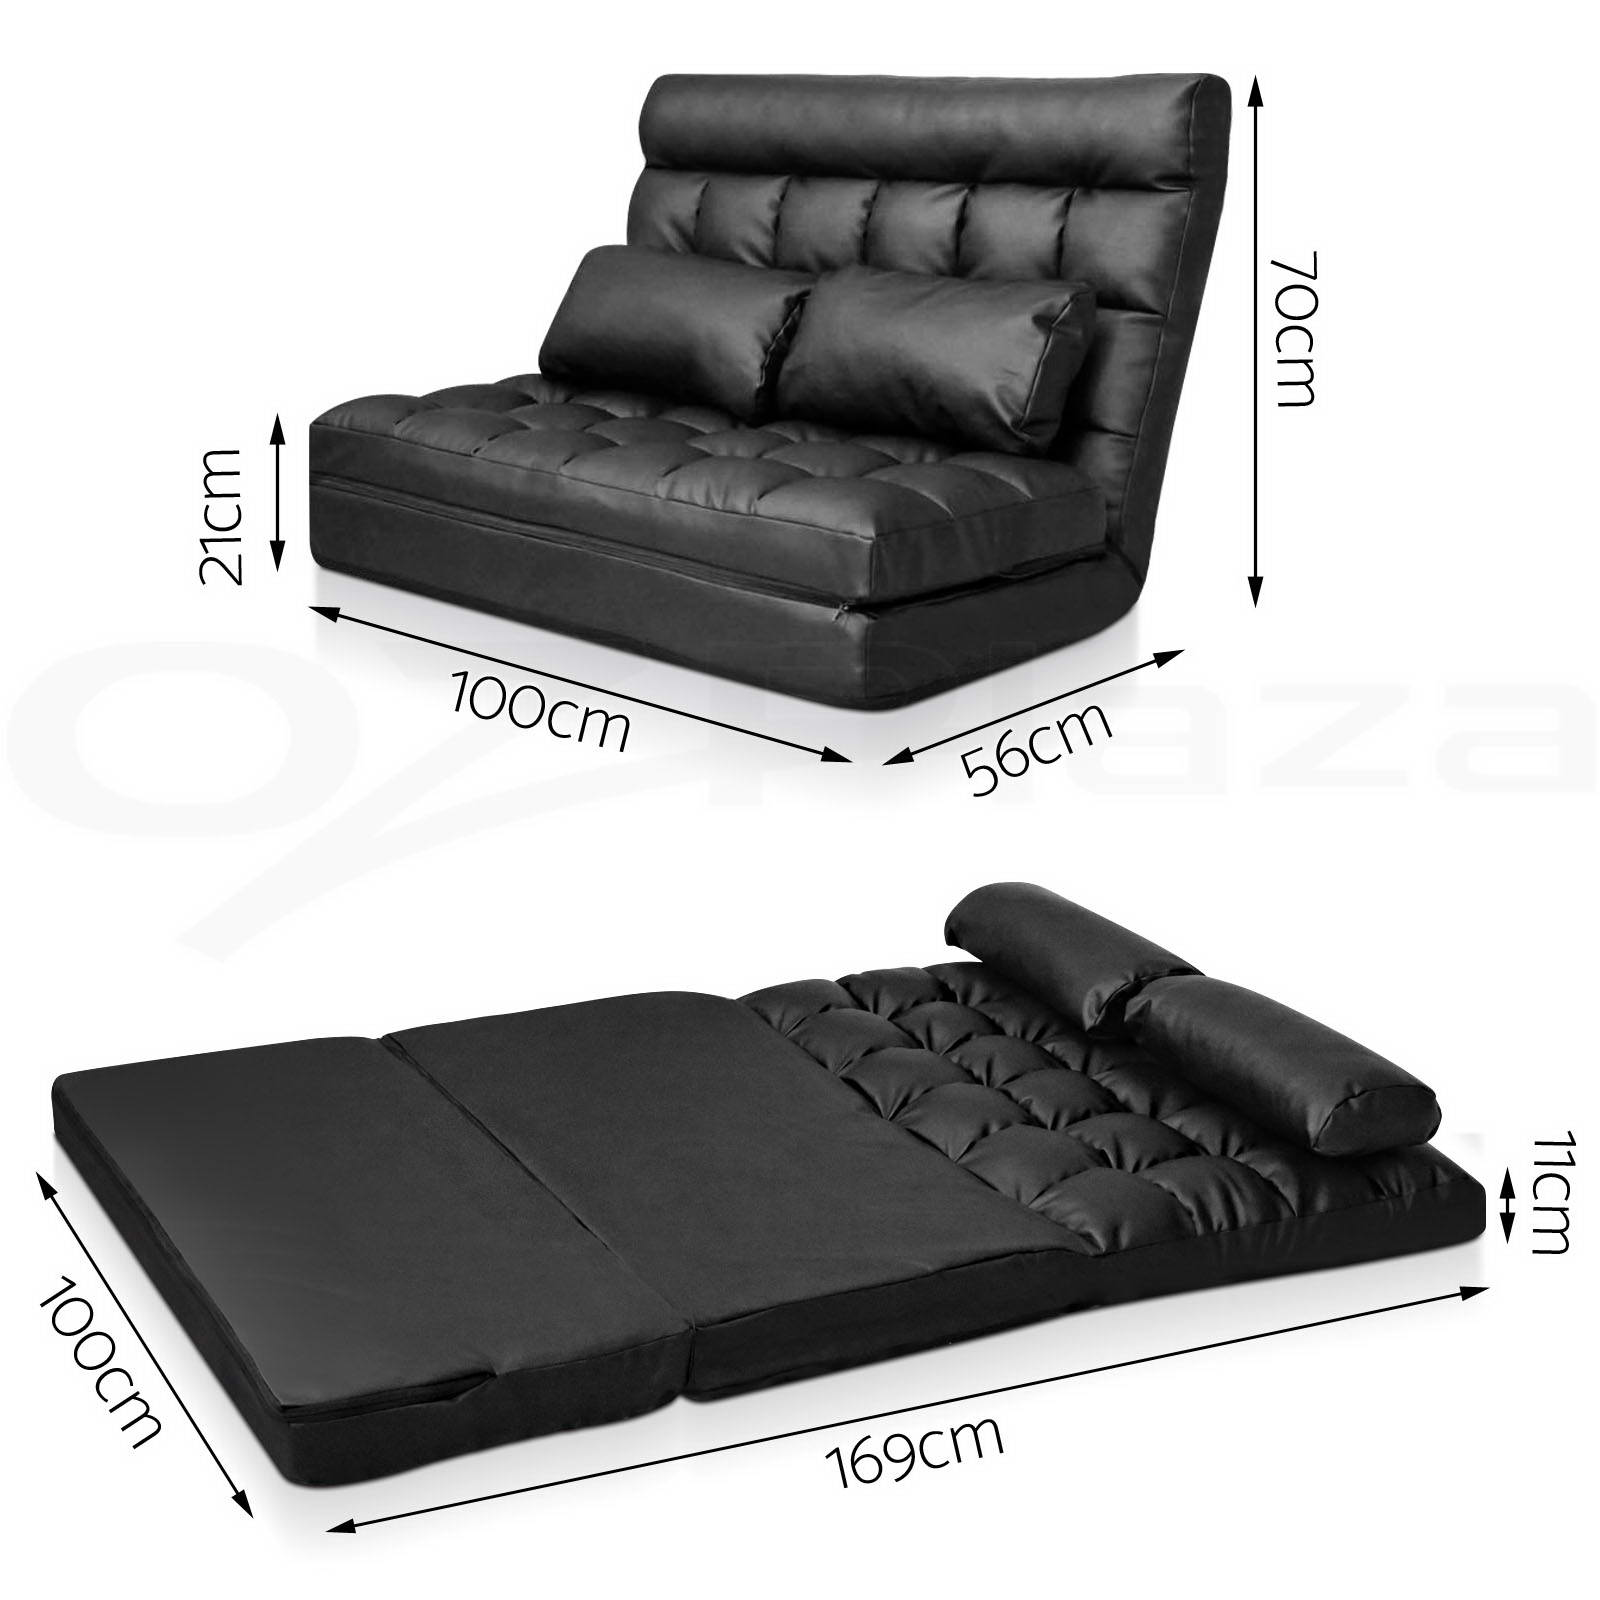 Floor Lounge Chair Lounge Sofa Bed Double Size Floor Recliner Folding Chaise